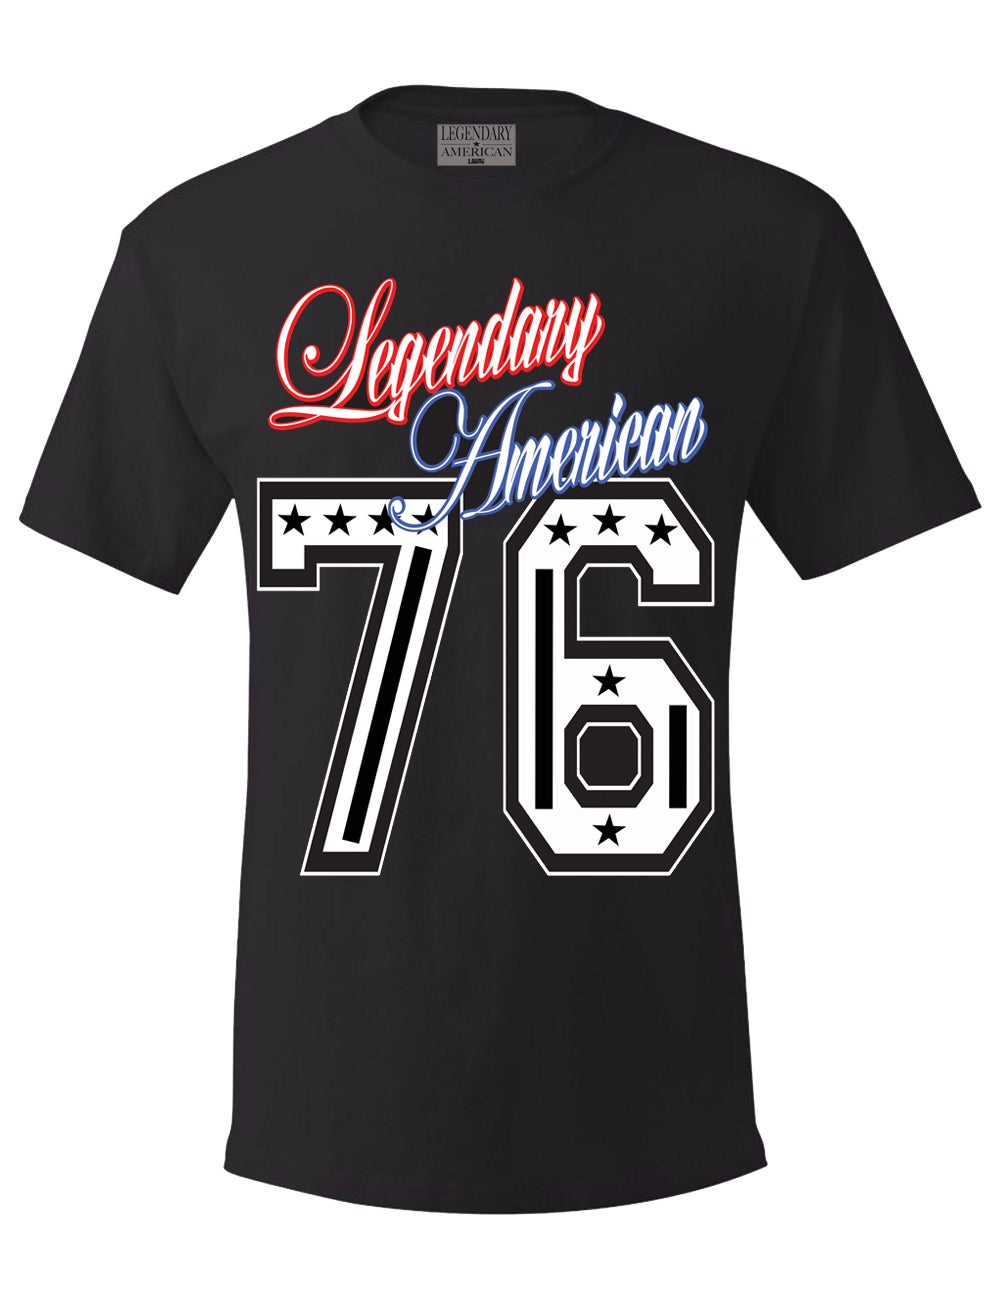 Image of Legendary American Liberty tee